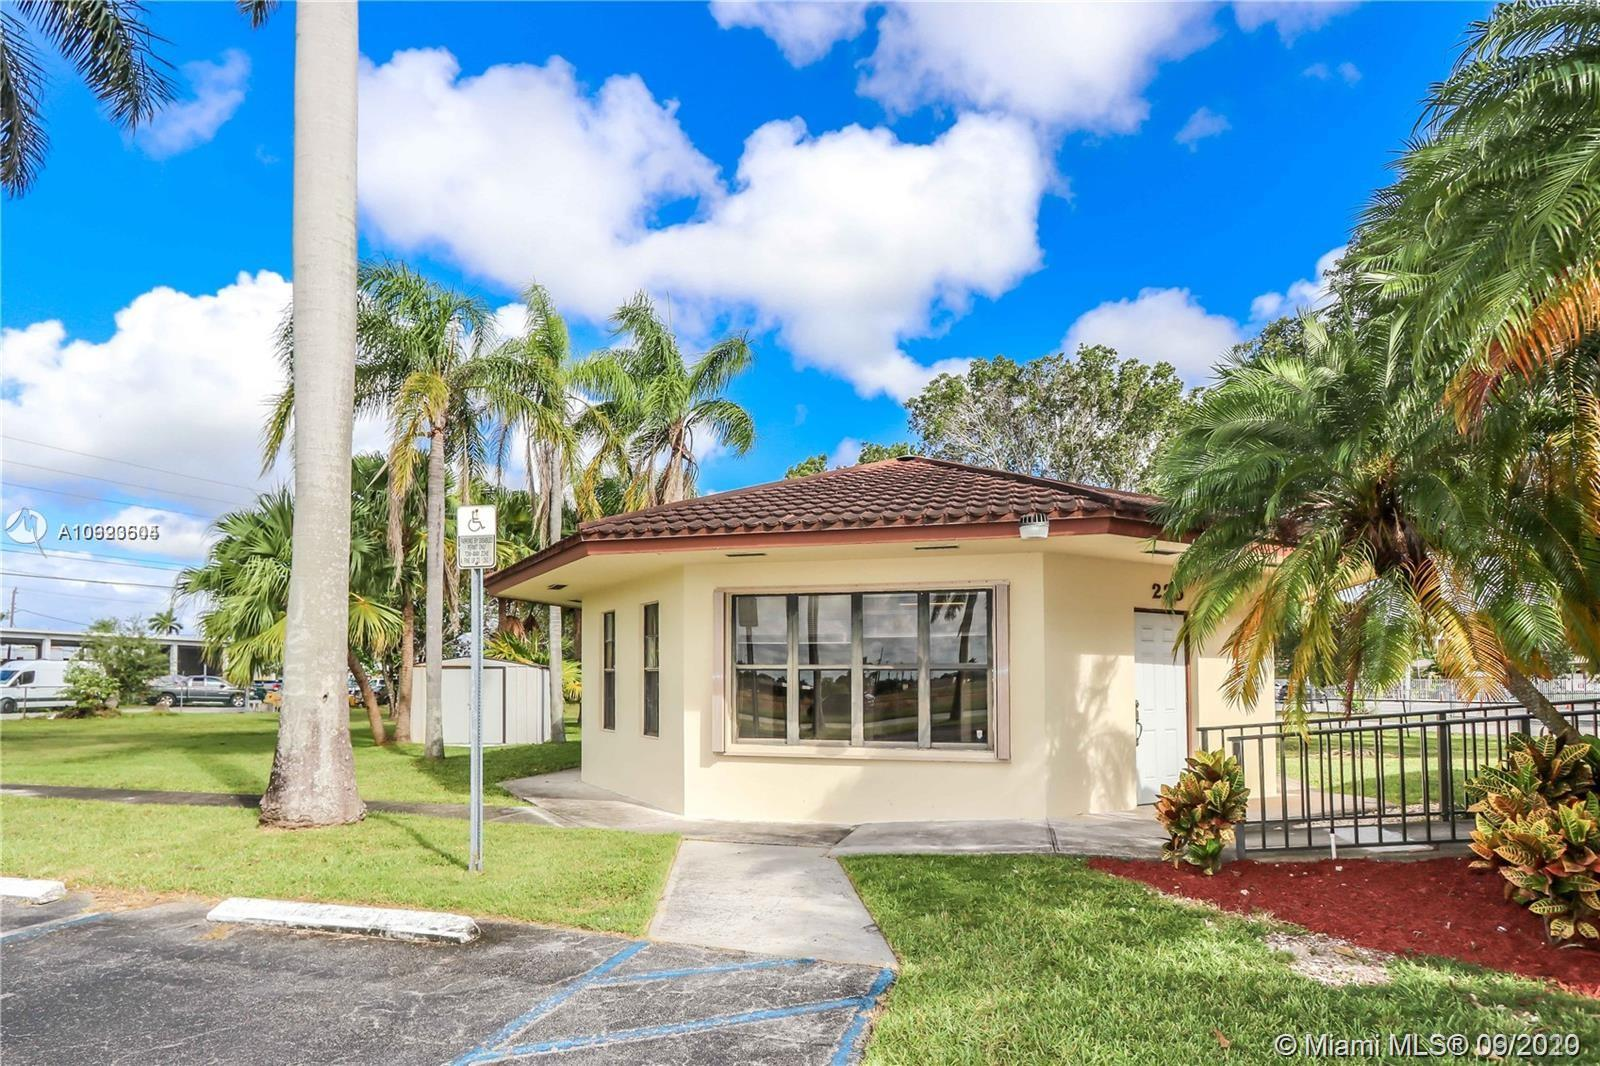 367 SE 2nd St Property Photo - Homestead, FL real estate listing